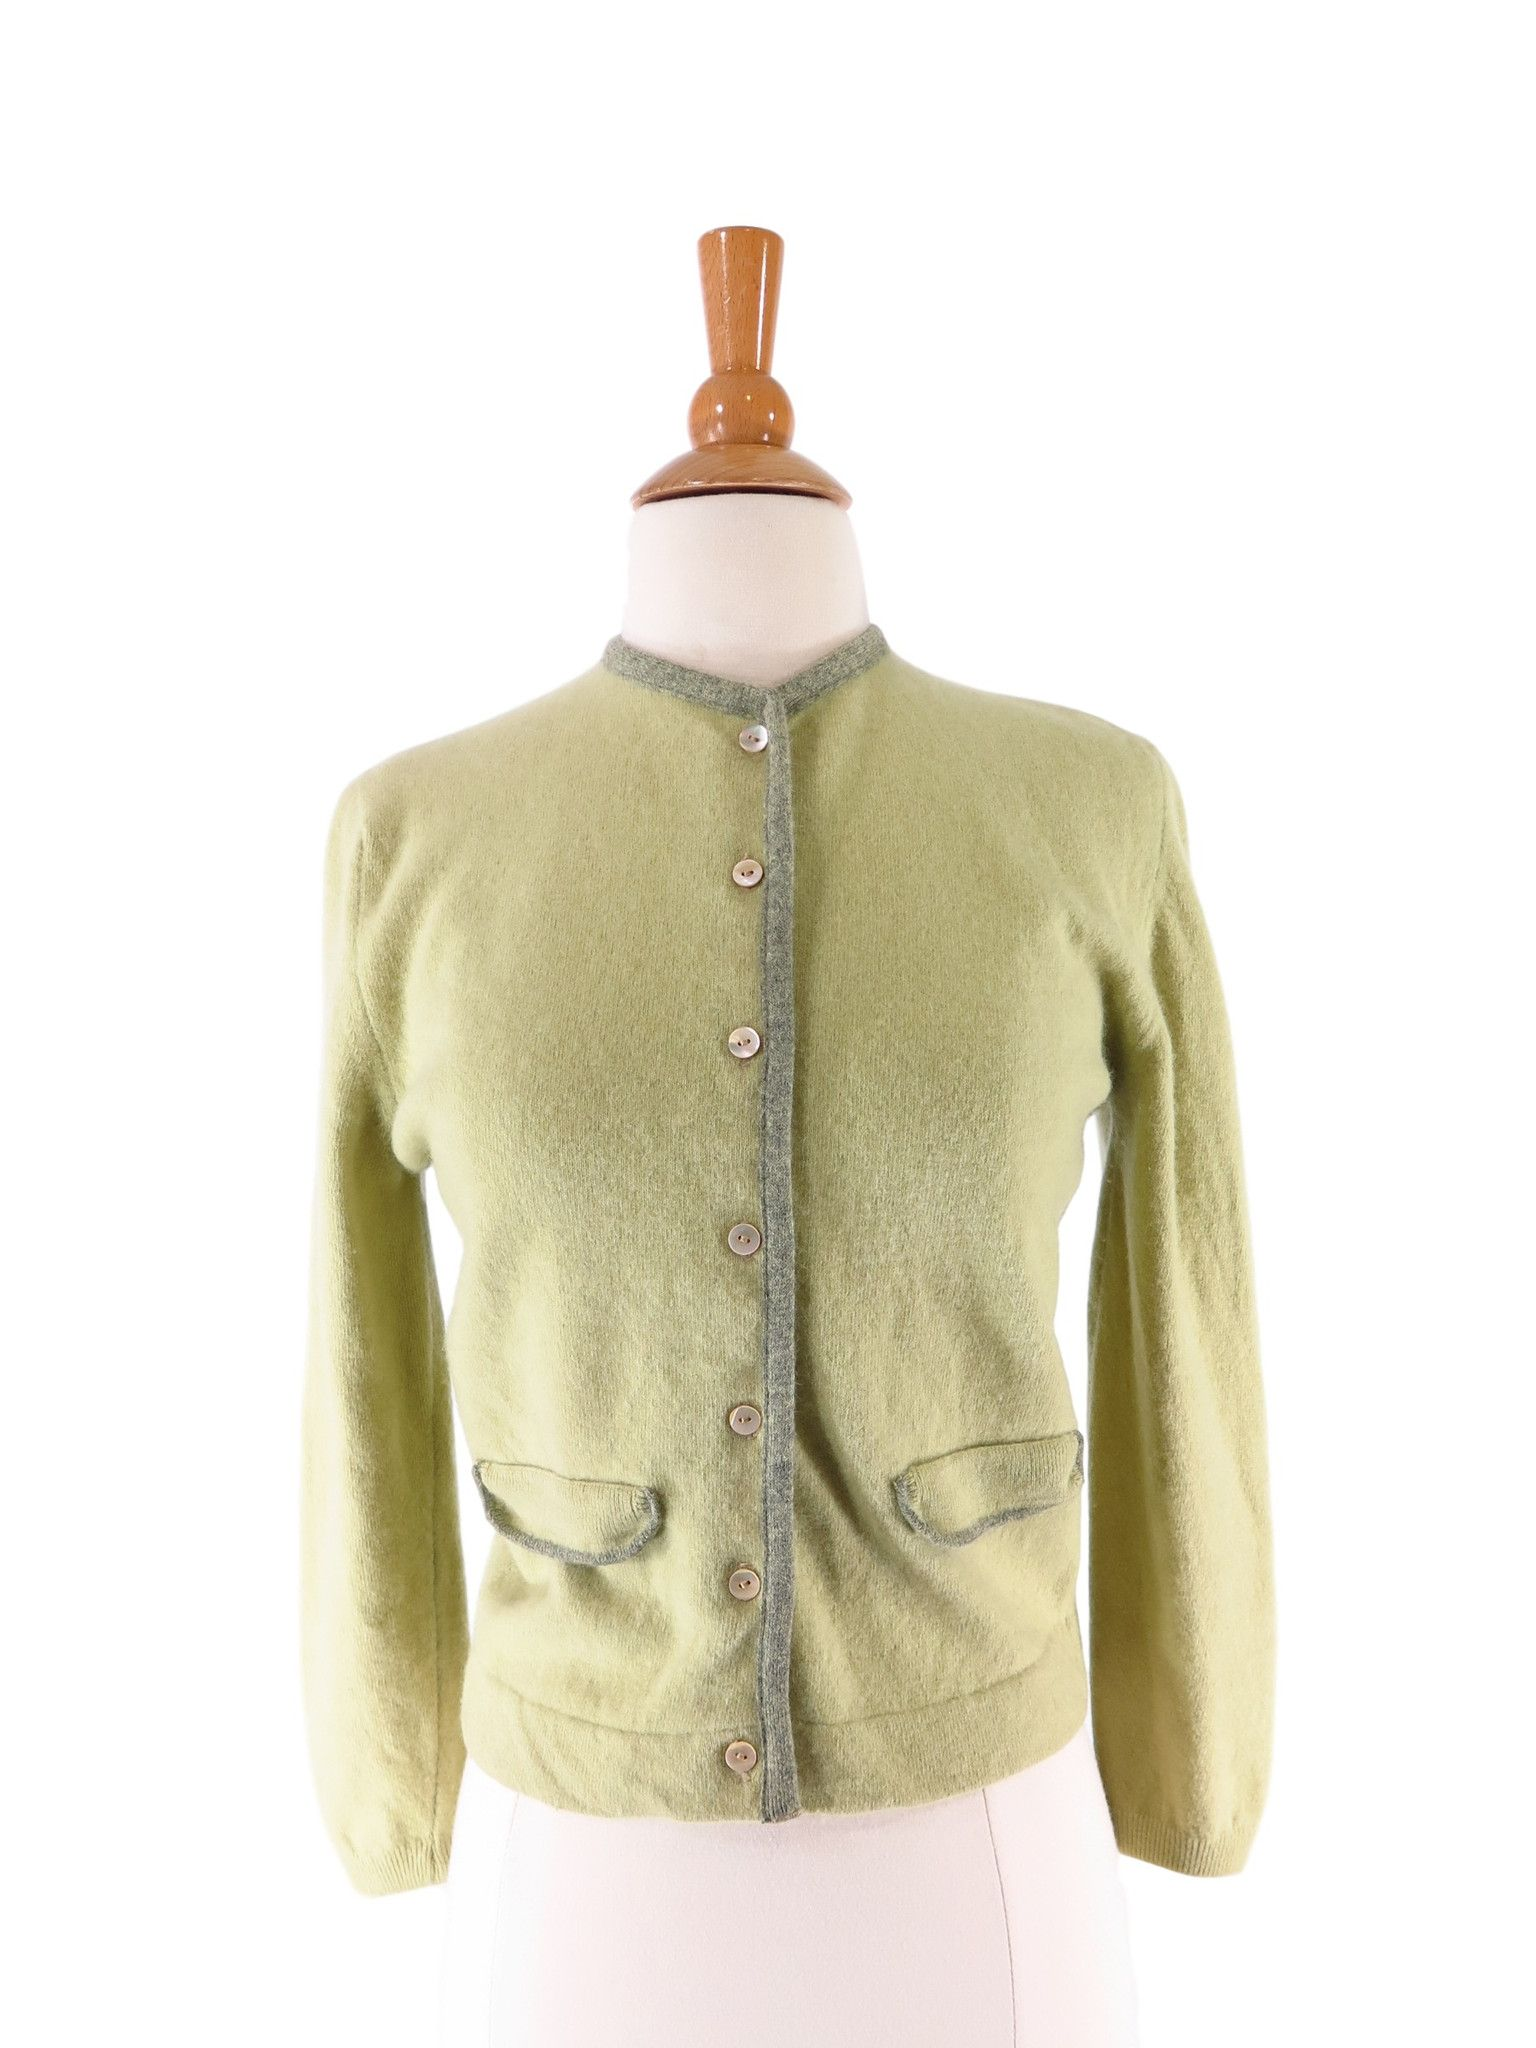 50s/60s Green Wool Angora Cardigan Sweater - sm | Green wool